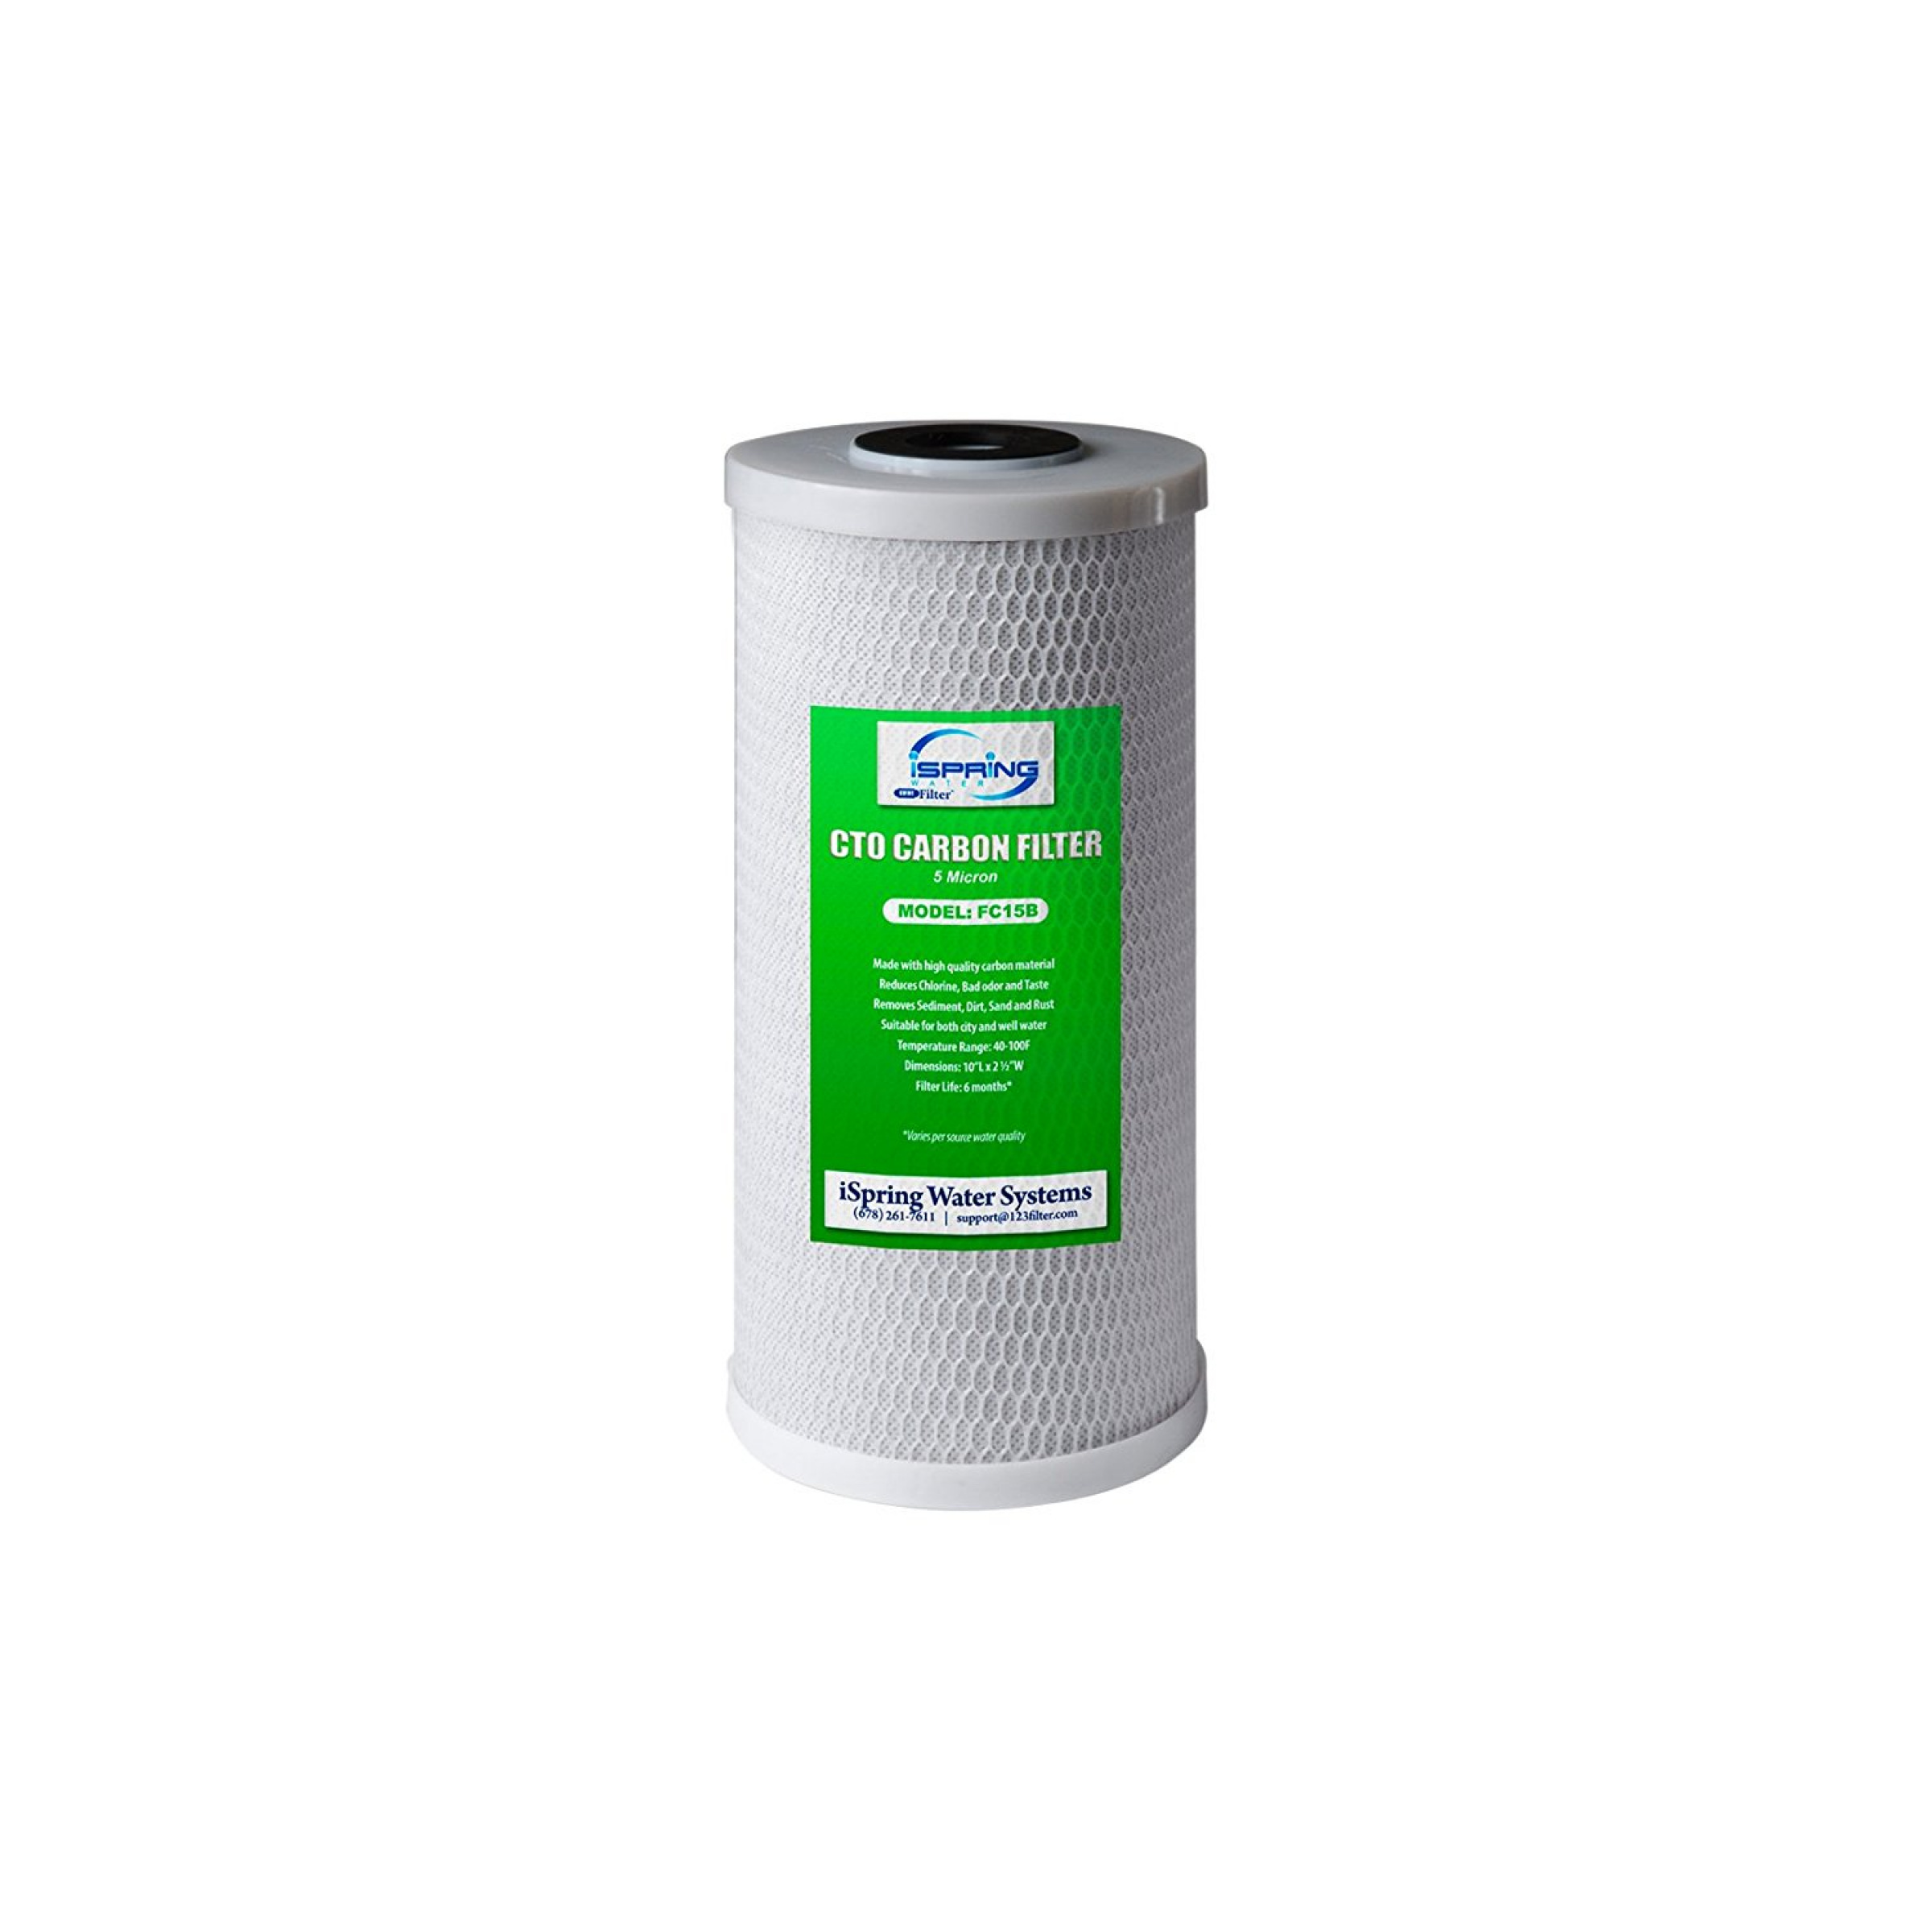 iSpring FG15B-KS Premium Quality Super Capacity GAC and KDF Carbon Filter Replacement Cartridge for Direct Connect Under Sink Water Filtration System US21B 10x 4.5